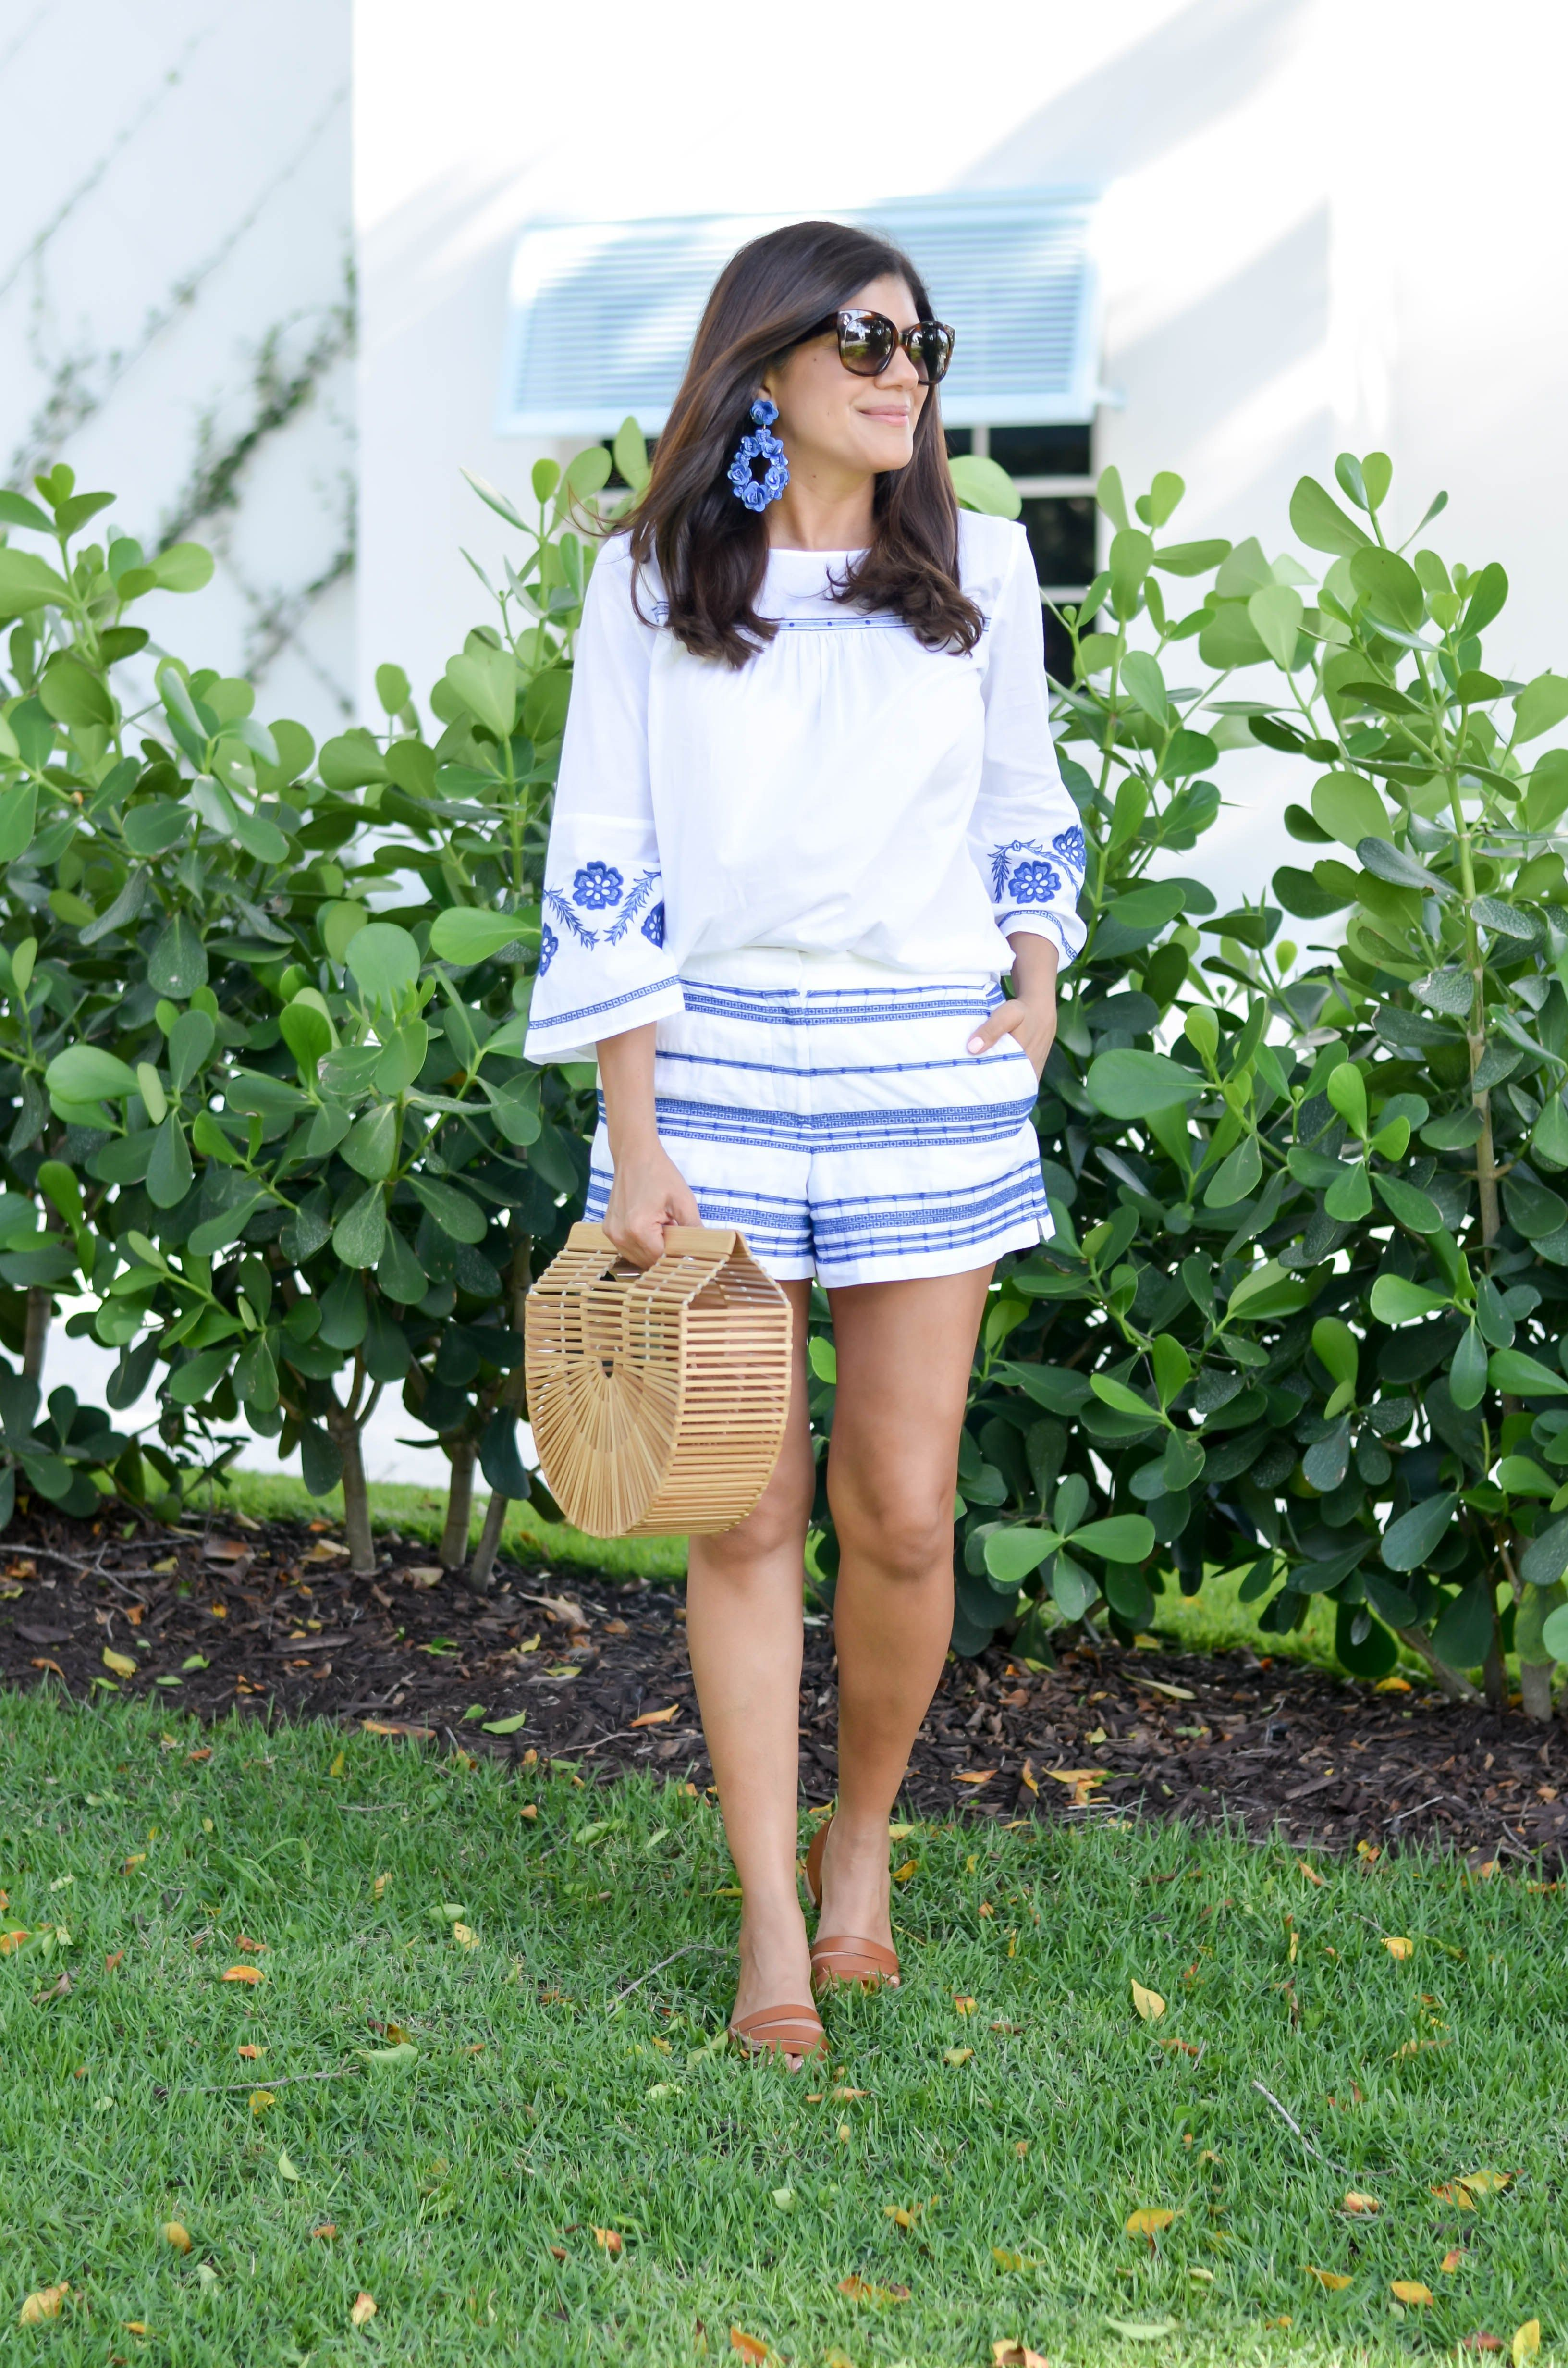 LOFT embroidered top and shorts